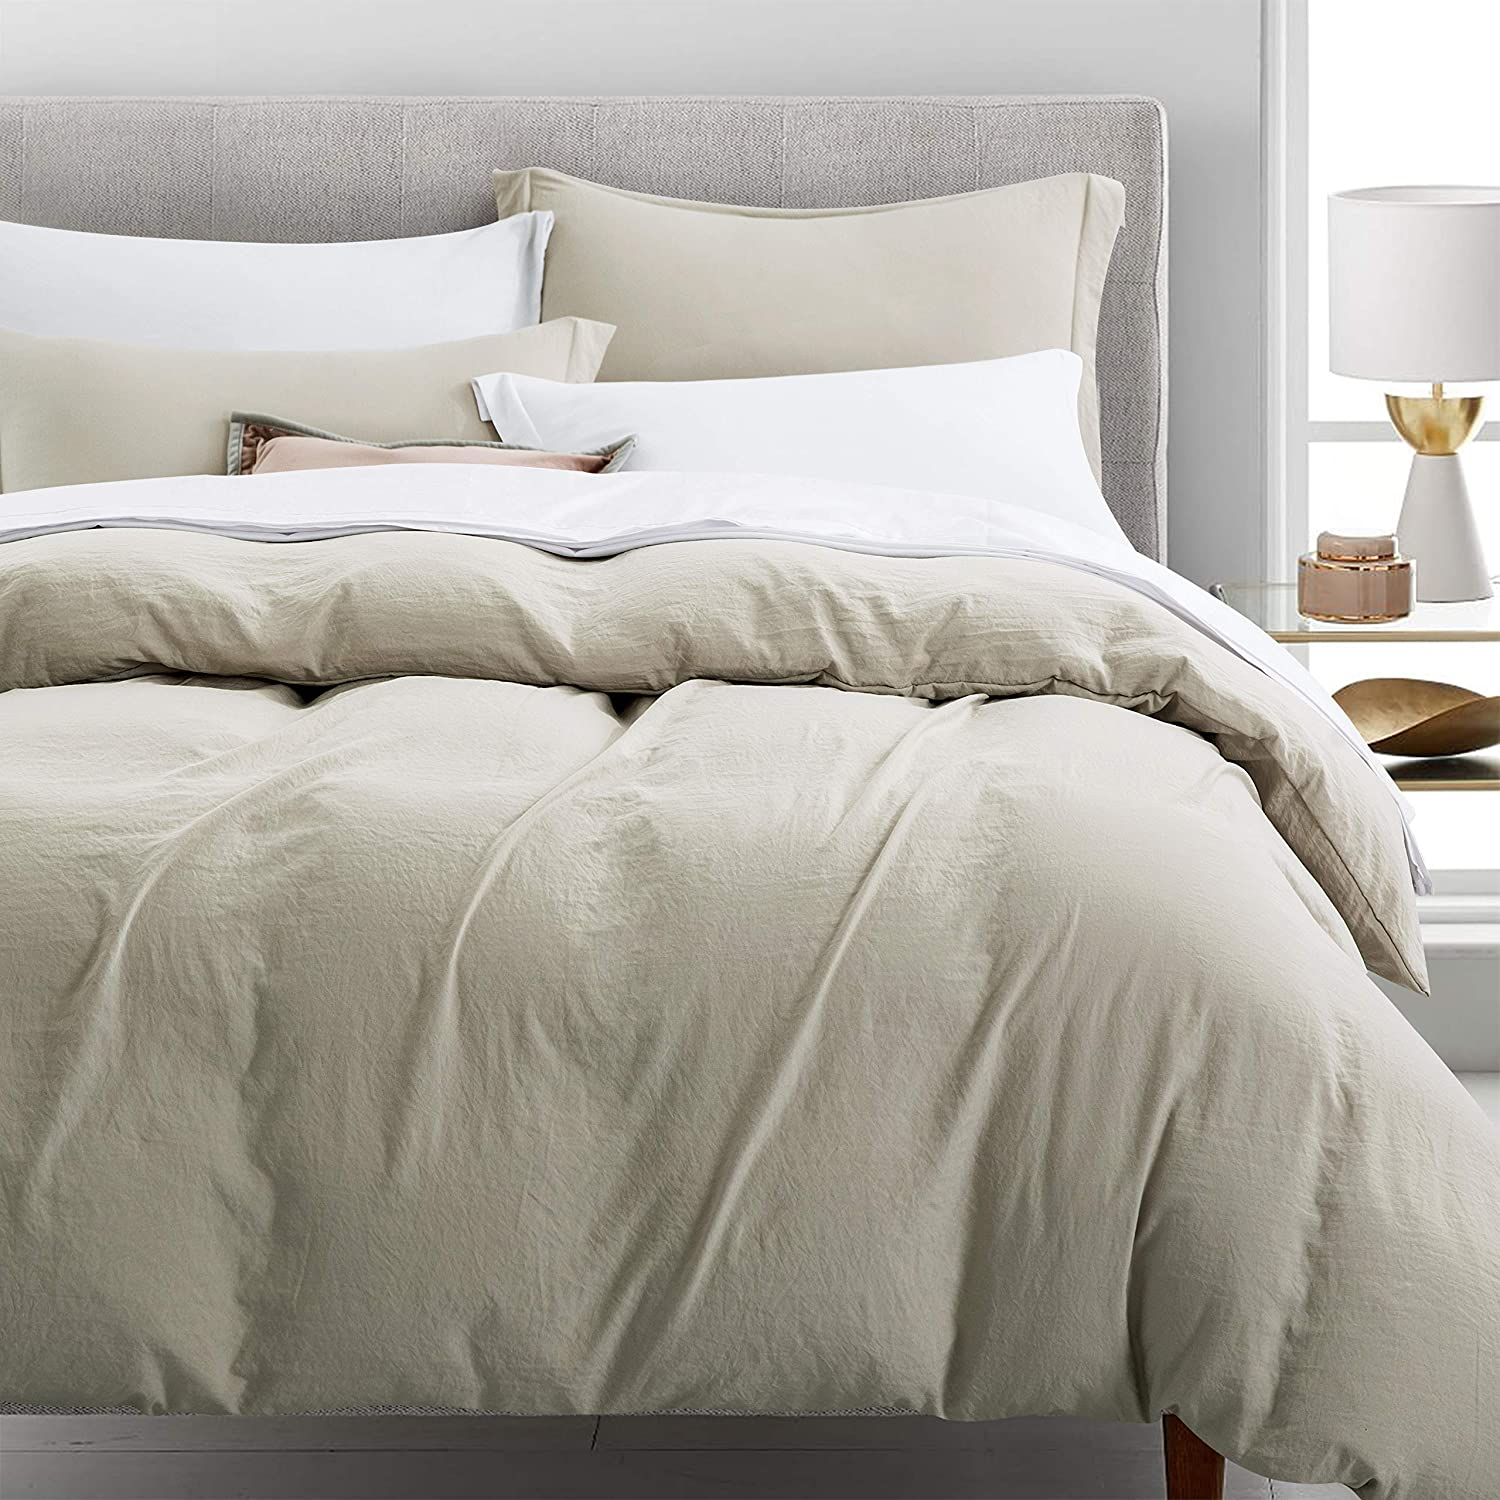 Newspin Bedding Duvet Cover Set Ultra Soft Double Brushed Microfiber 100% Washed Lightweight Comforter Cover with Hidden Zipper Closure - 3 Piece Full/Queen Duvet Cover, Moon Beam